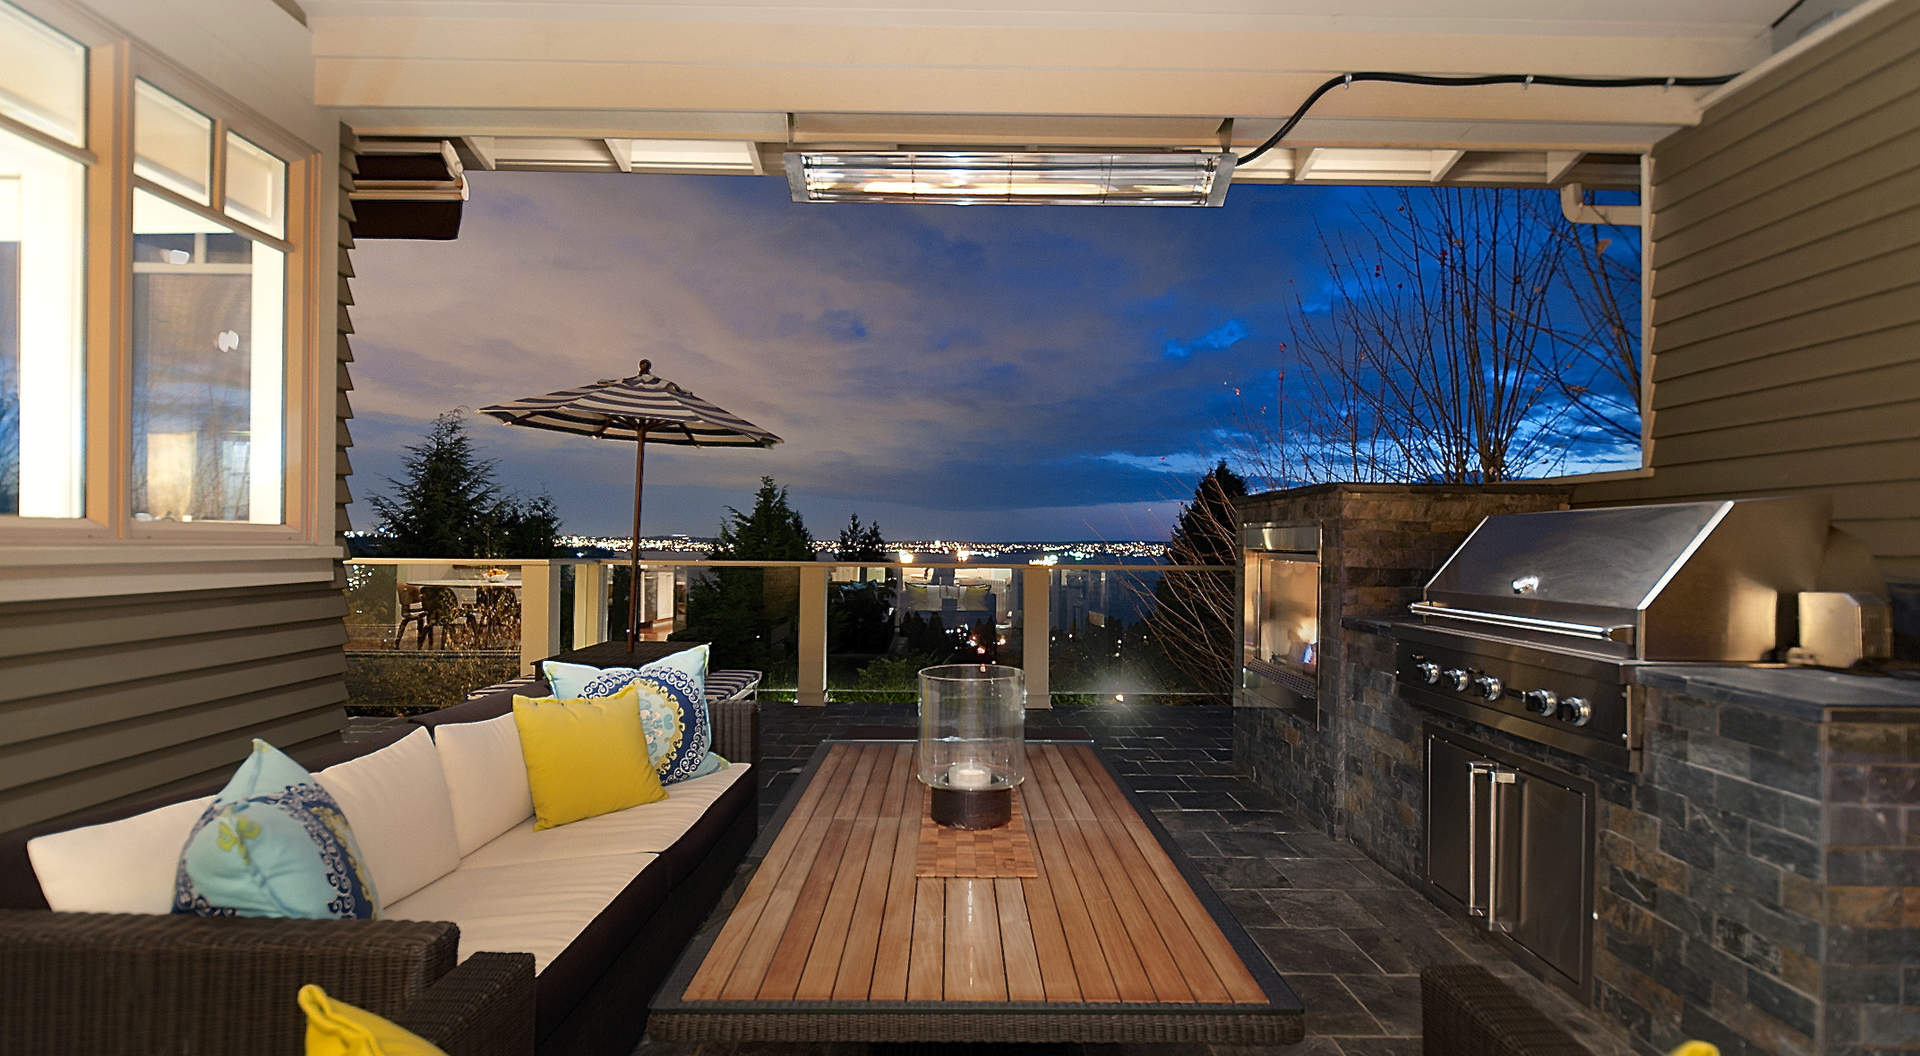 Sensational Outdoor Entertainment Area with Fireplace & BBQ Center